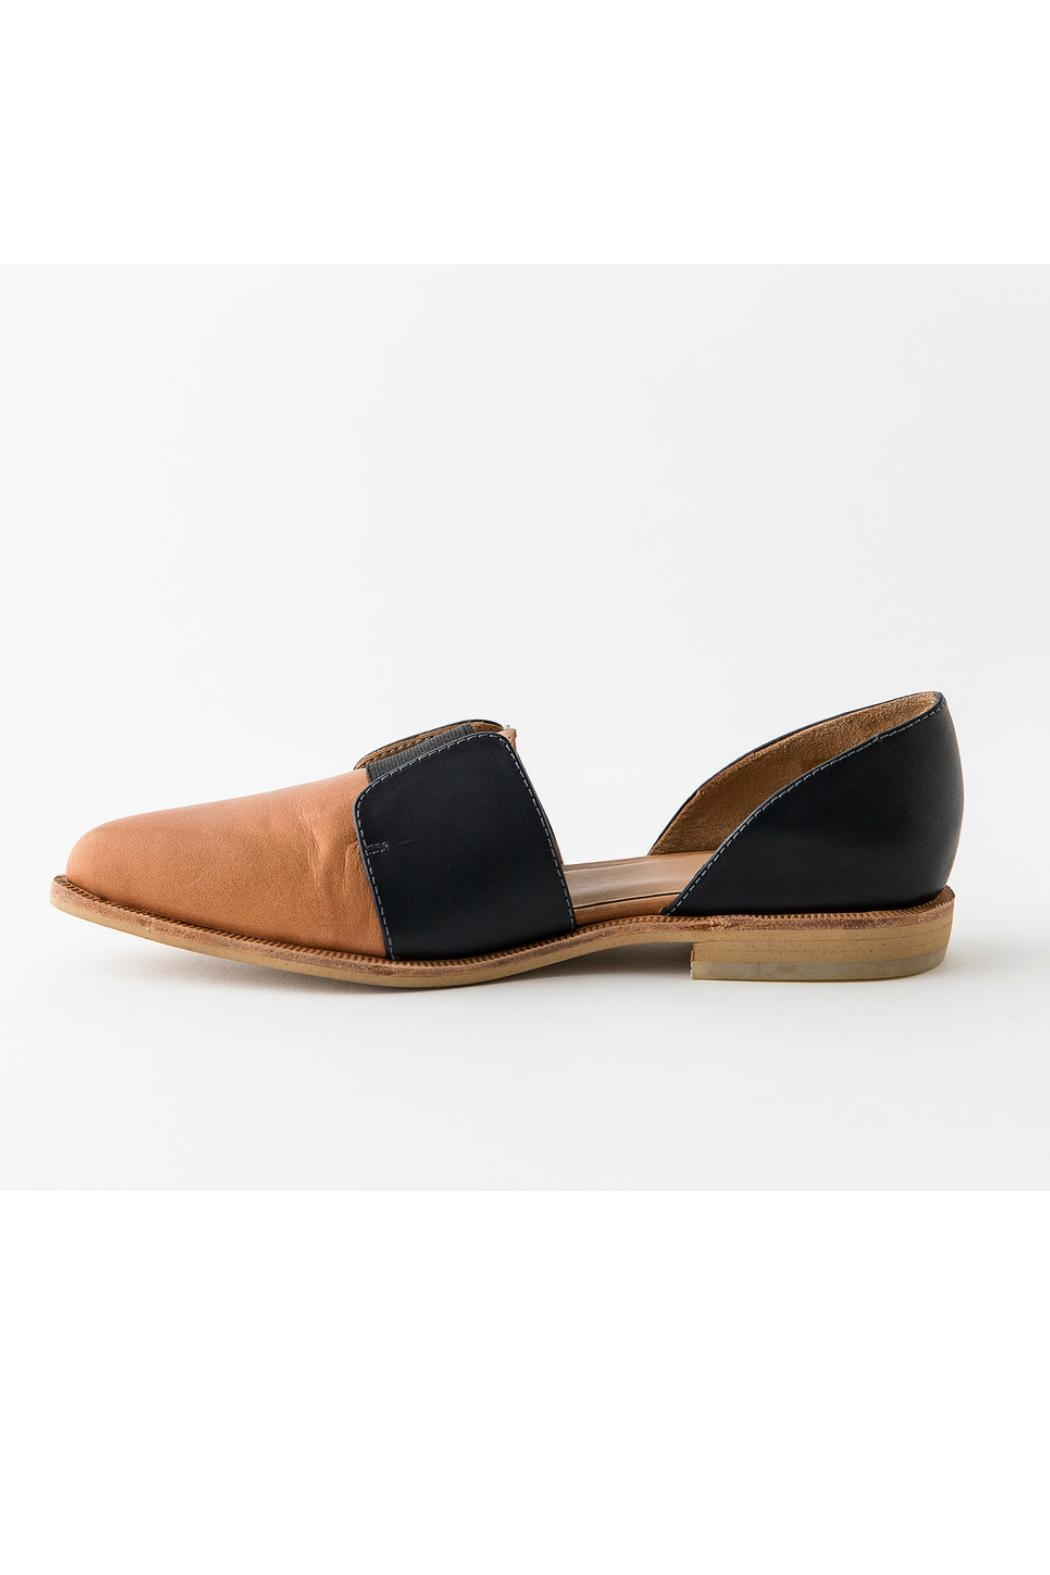 Fortress of Inca Two-Tone Leather Loafer - Front Cropped Image